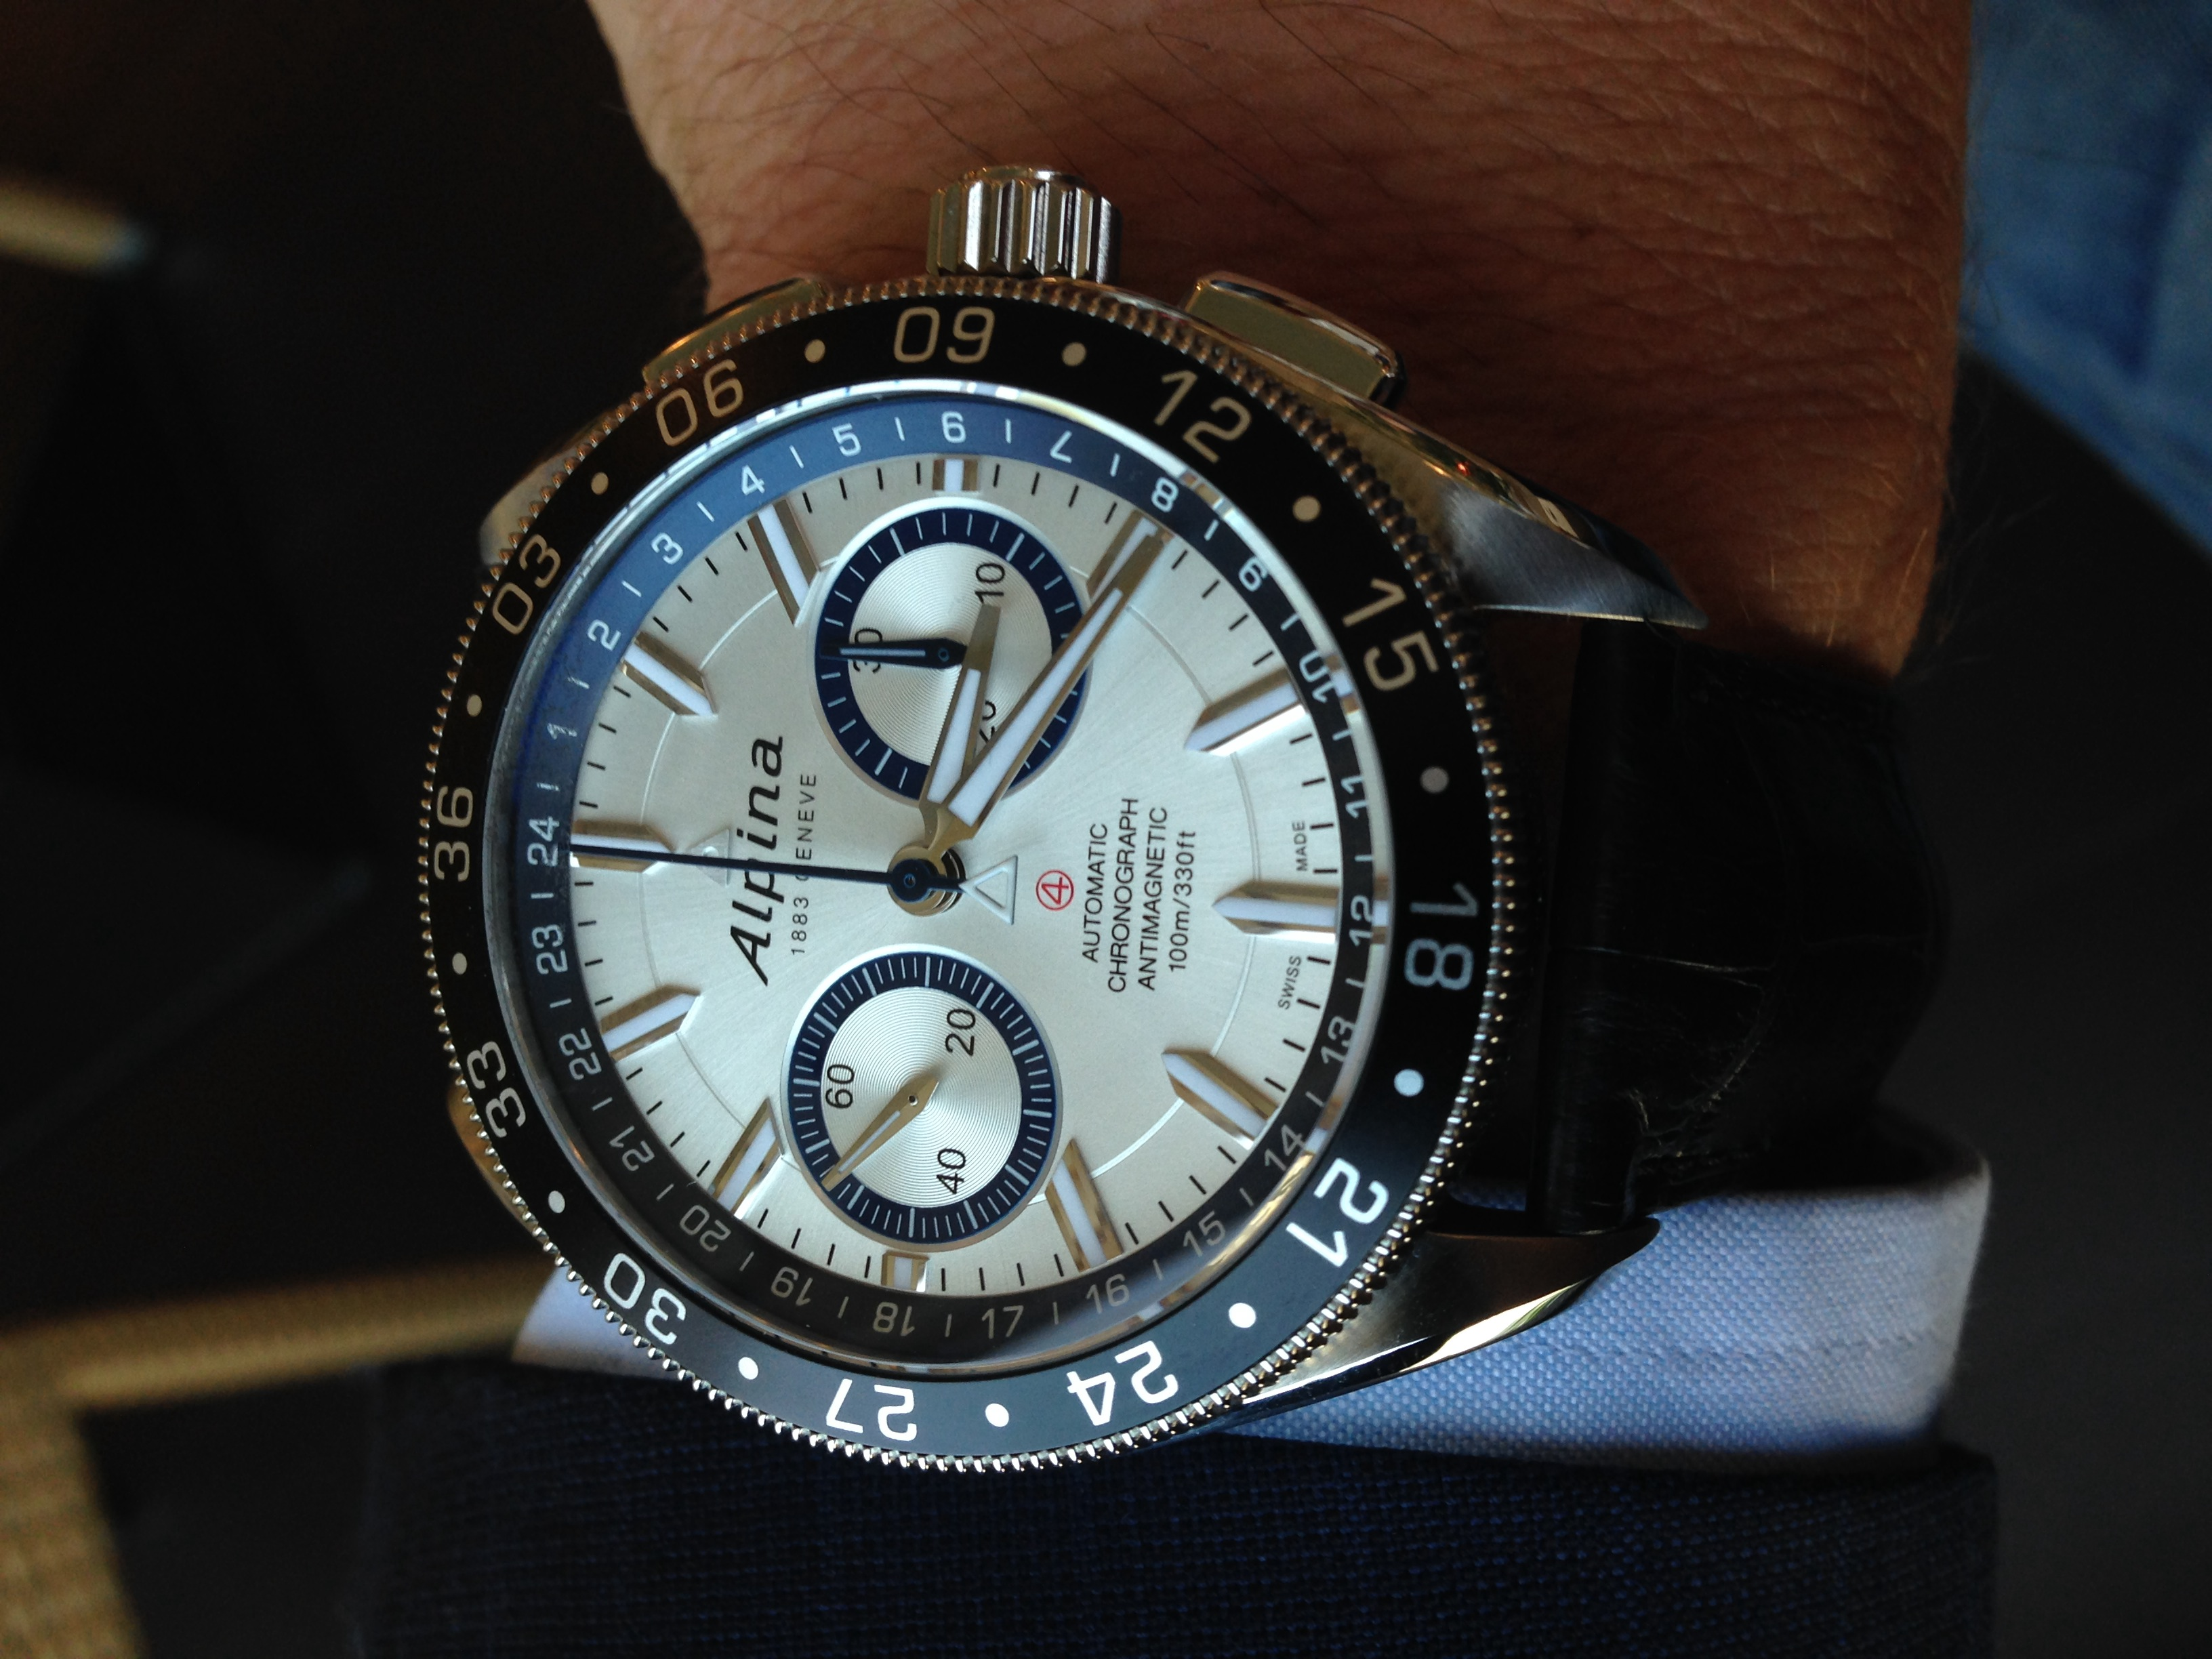 Montre Alpiner 4 Chronographe « Race for Water »